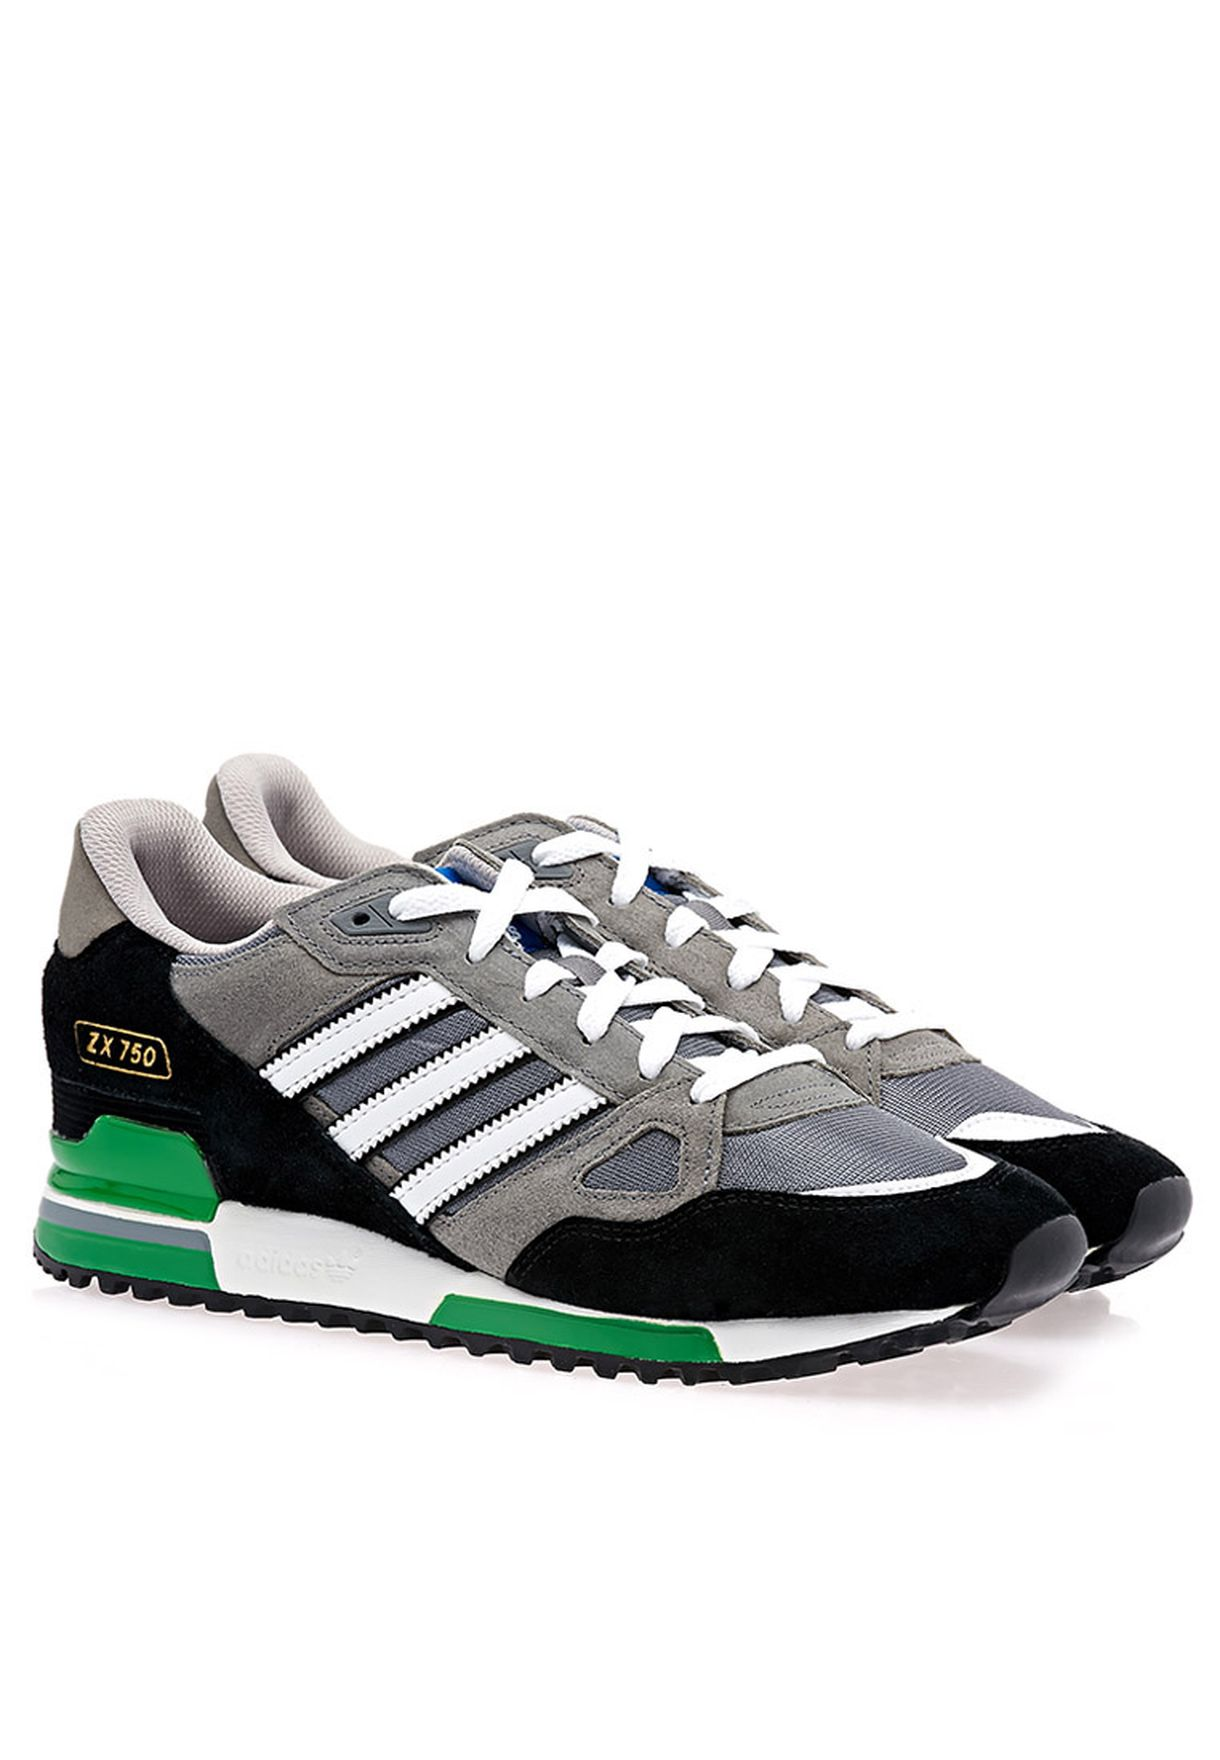 6c8534badbe93 ... 50% off shop adidas originals grey zx 750 g96719 for men in uae  ad478sh04egh 776a5